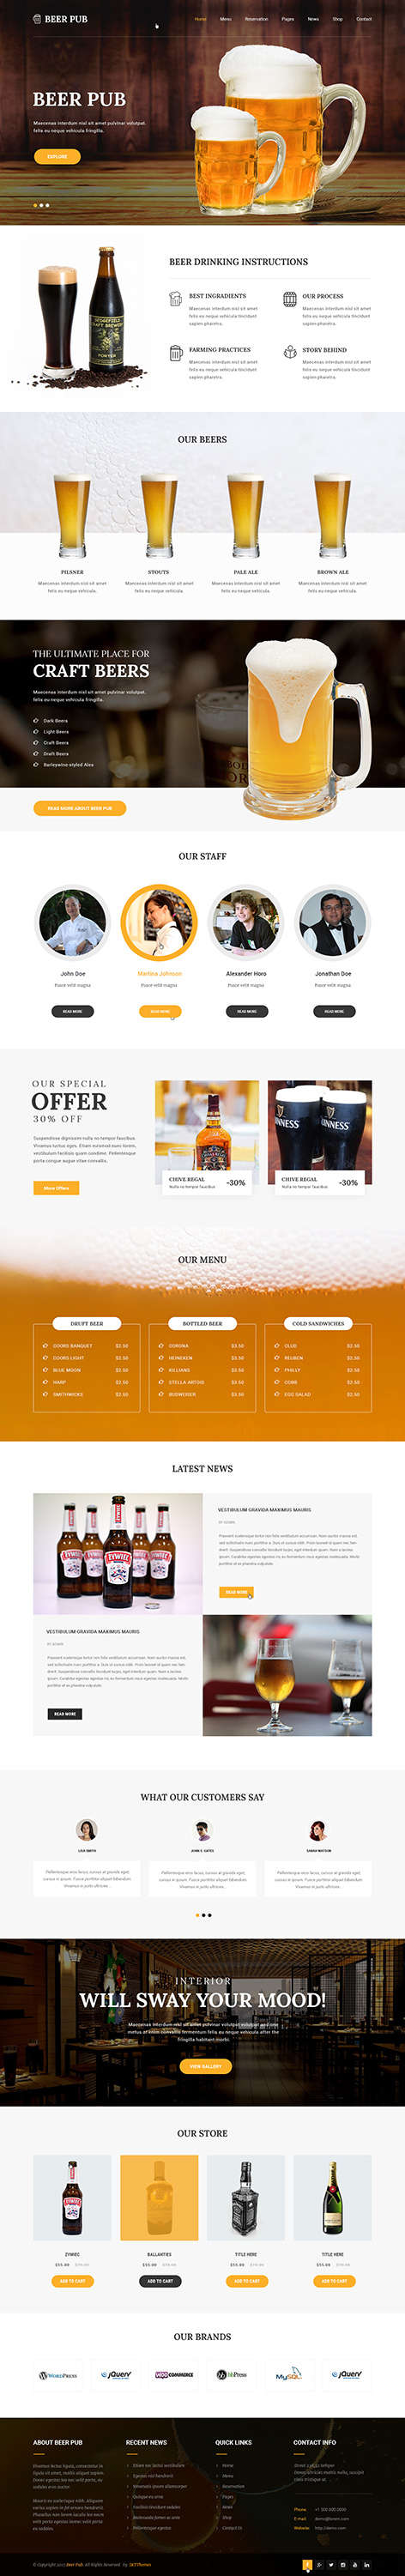 beer pub wrodpress theme1 - Beer and Pub